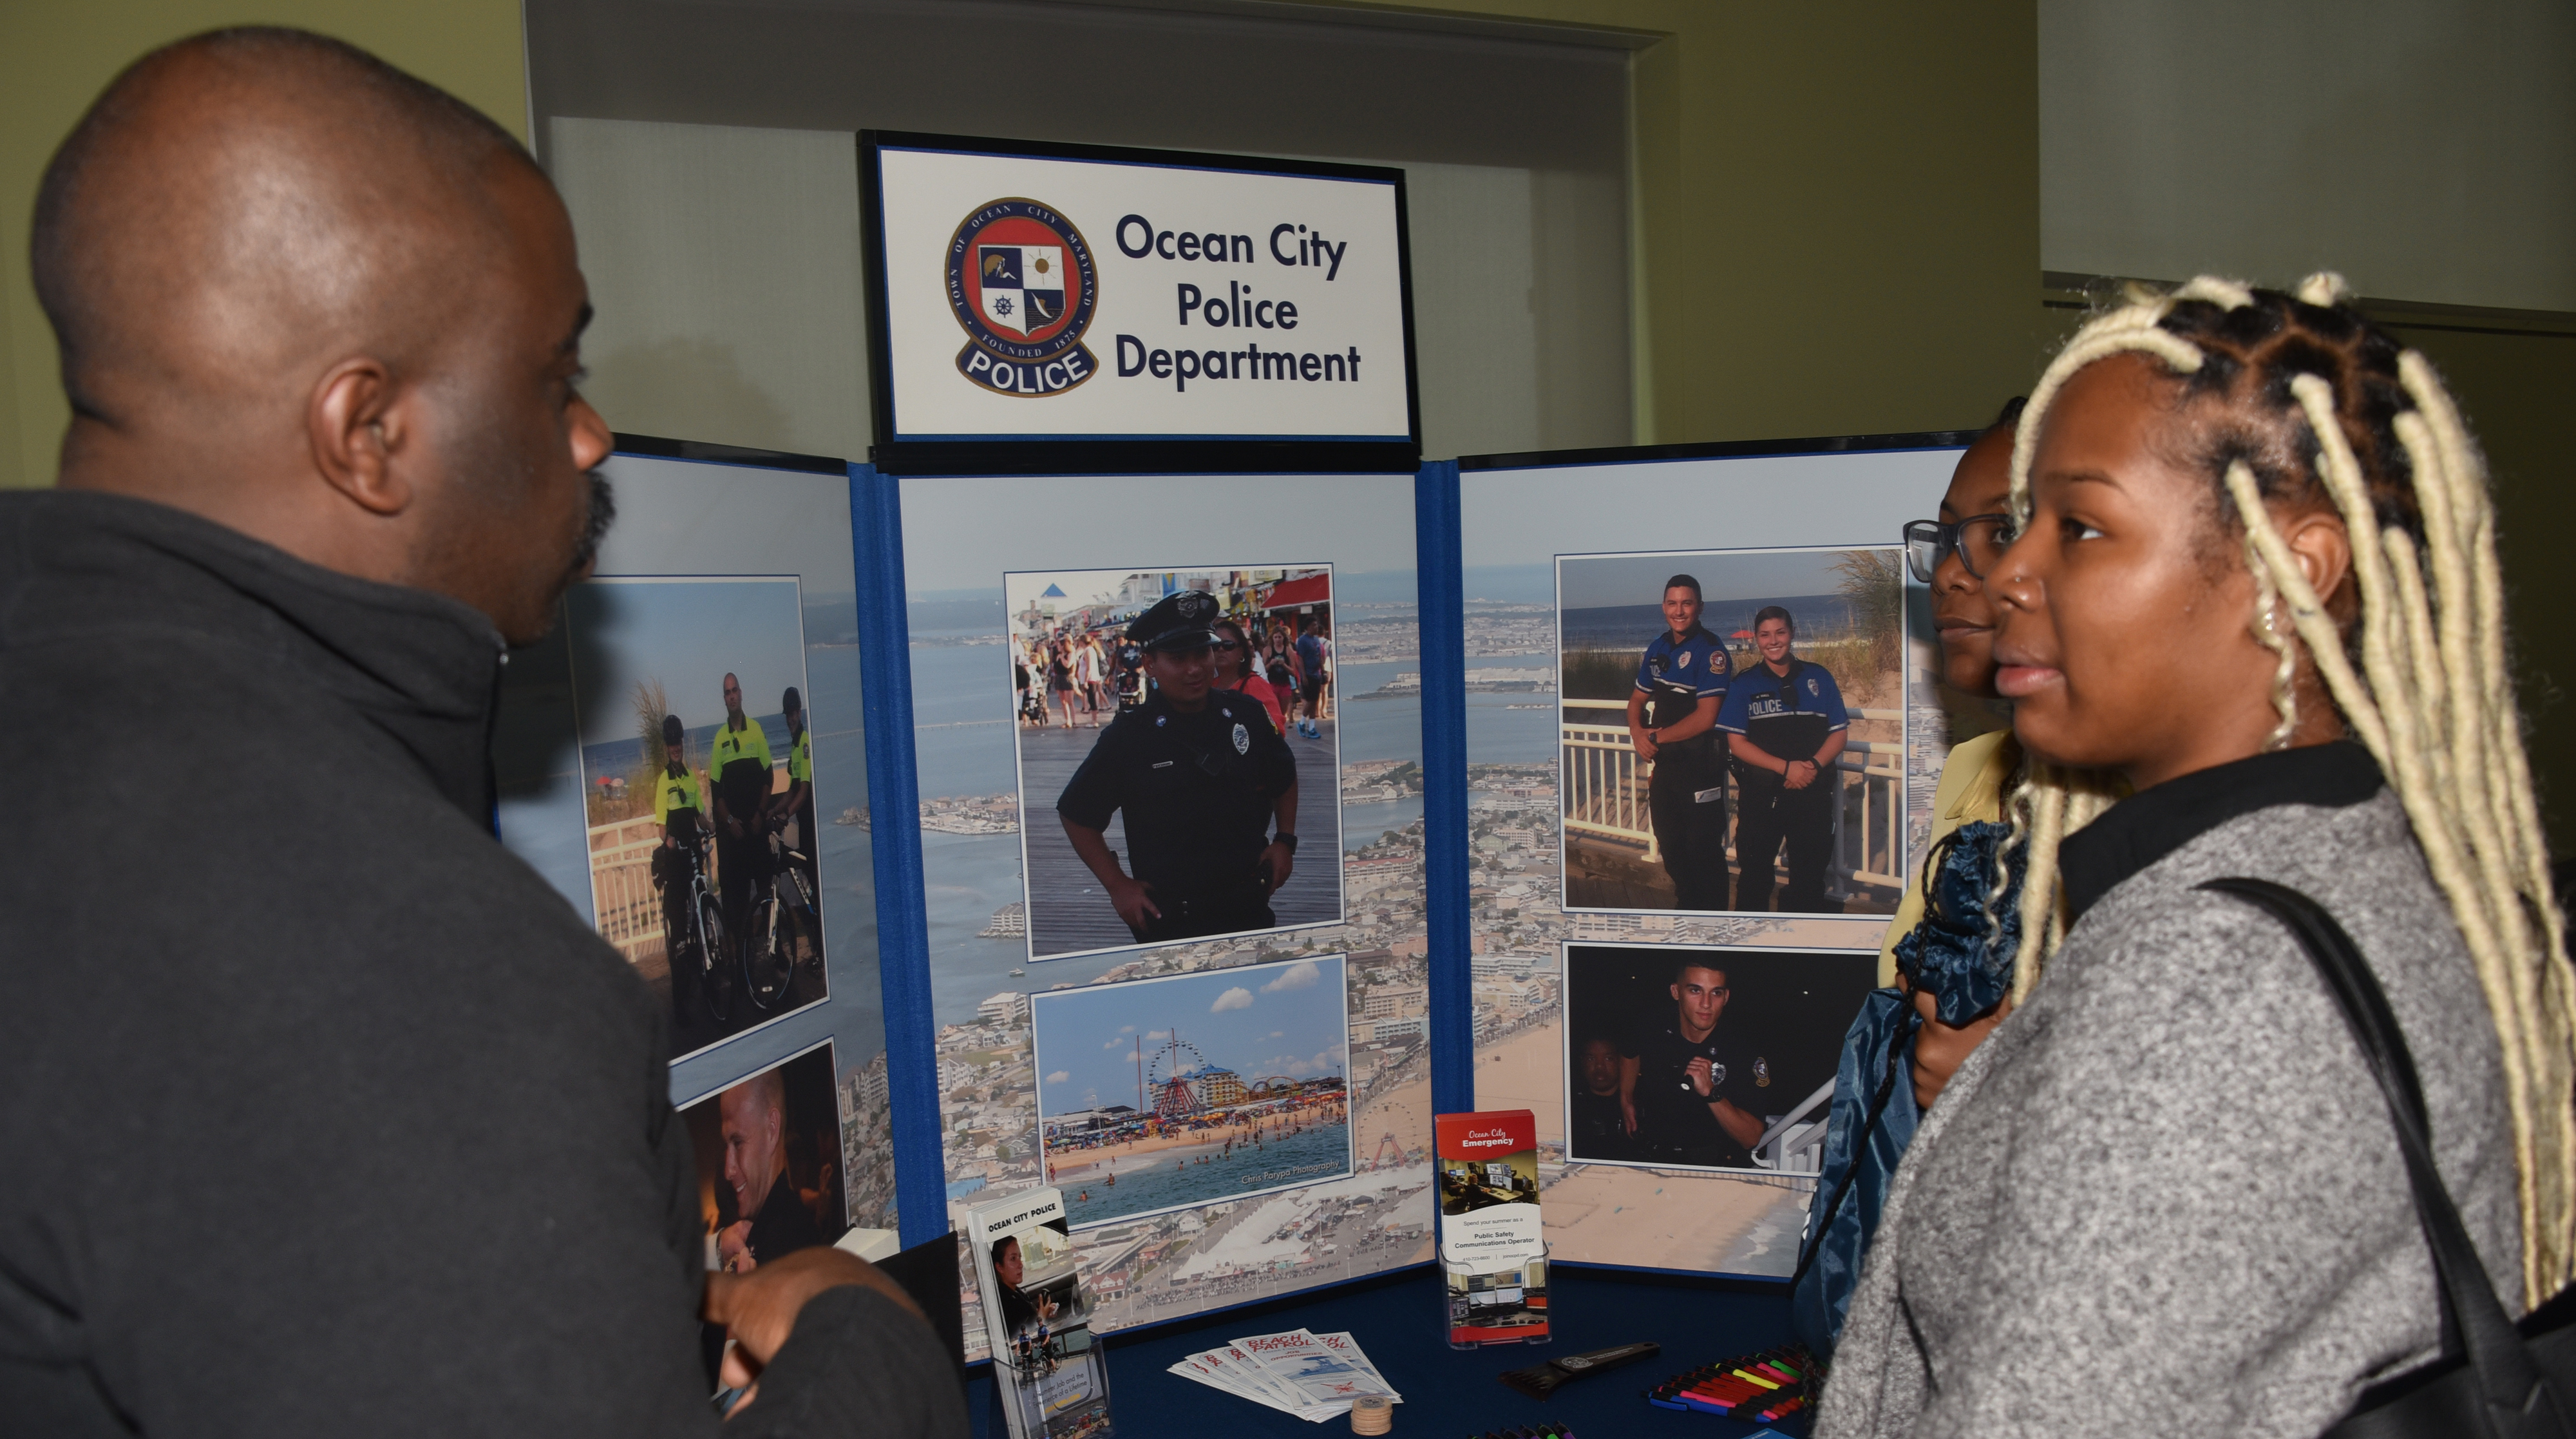 The Ocean City Police Department was one of the 39 law enforcement agencies and other organizations that participated in the Sgt. Rodney H. Bond Jr. Law Enforcement and Forensic Science Career Fair.